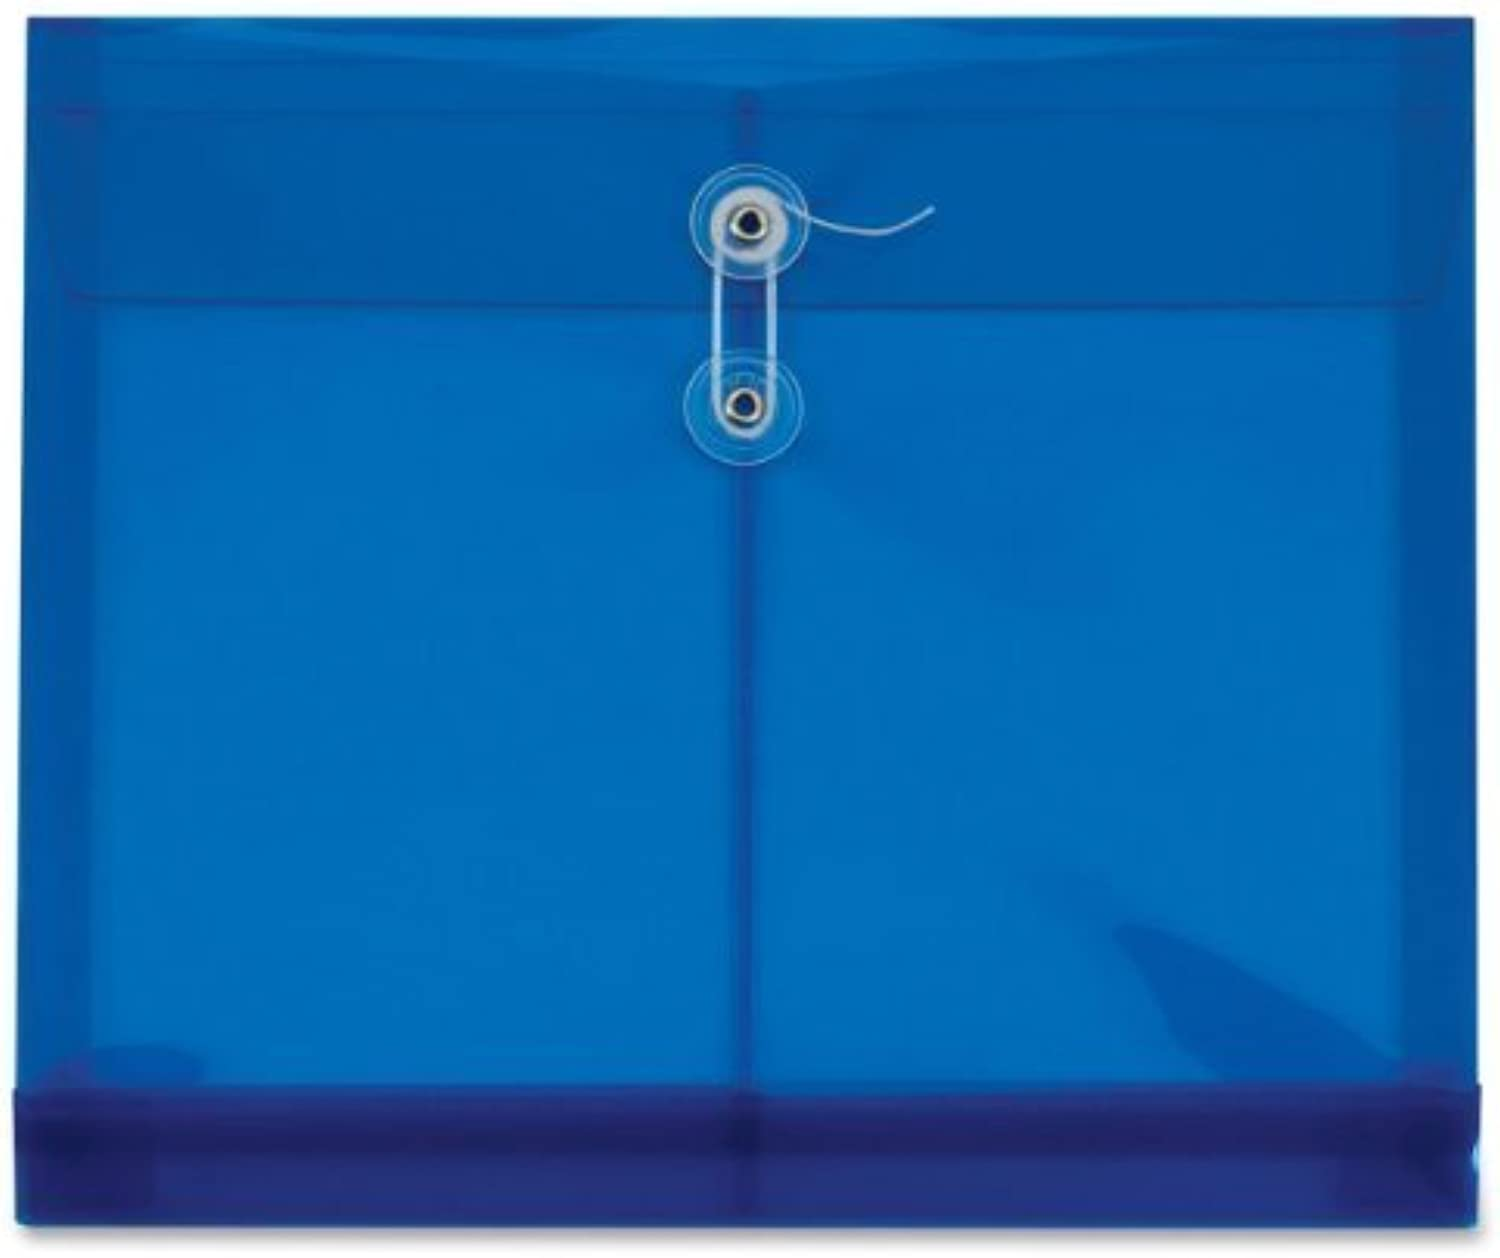 Globe-Weis Poly Envelopes, Side Open, 1.25-Inch Expansion, Letter Größe, Blau, 5 Envelopes Per Pack (84522GW) by TOPS Business Forms, Inc. B018OR3P5M   Perfekte Verarbeitung